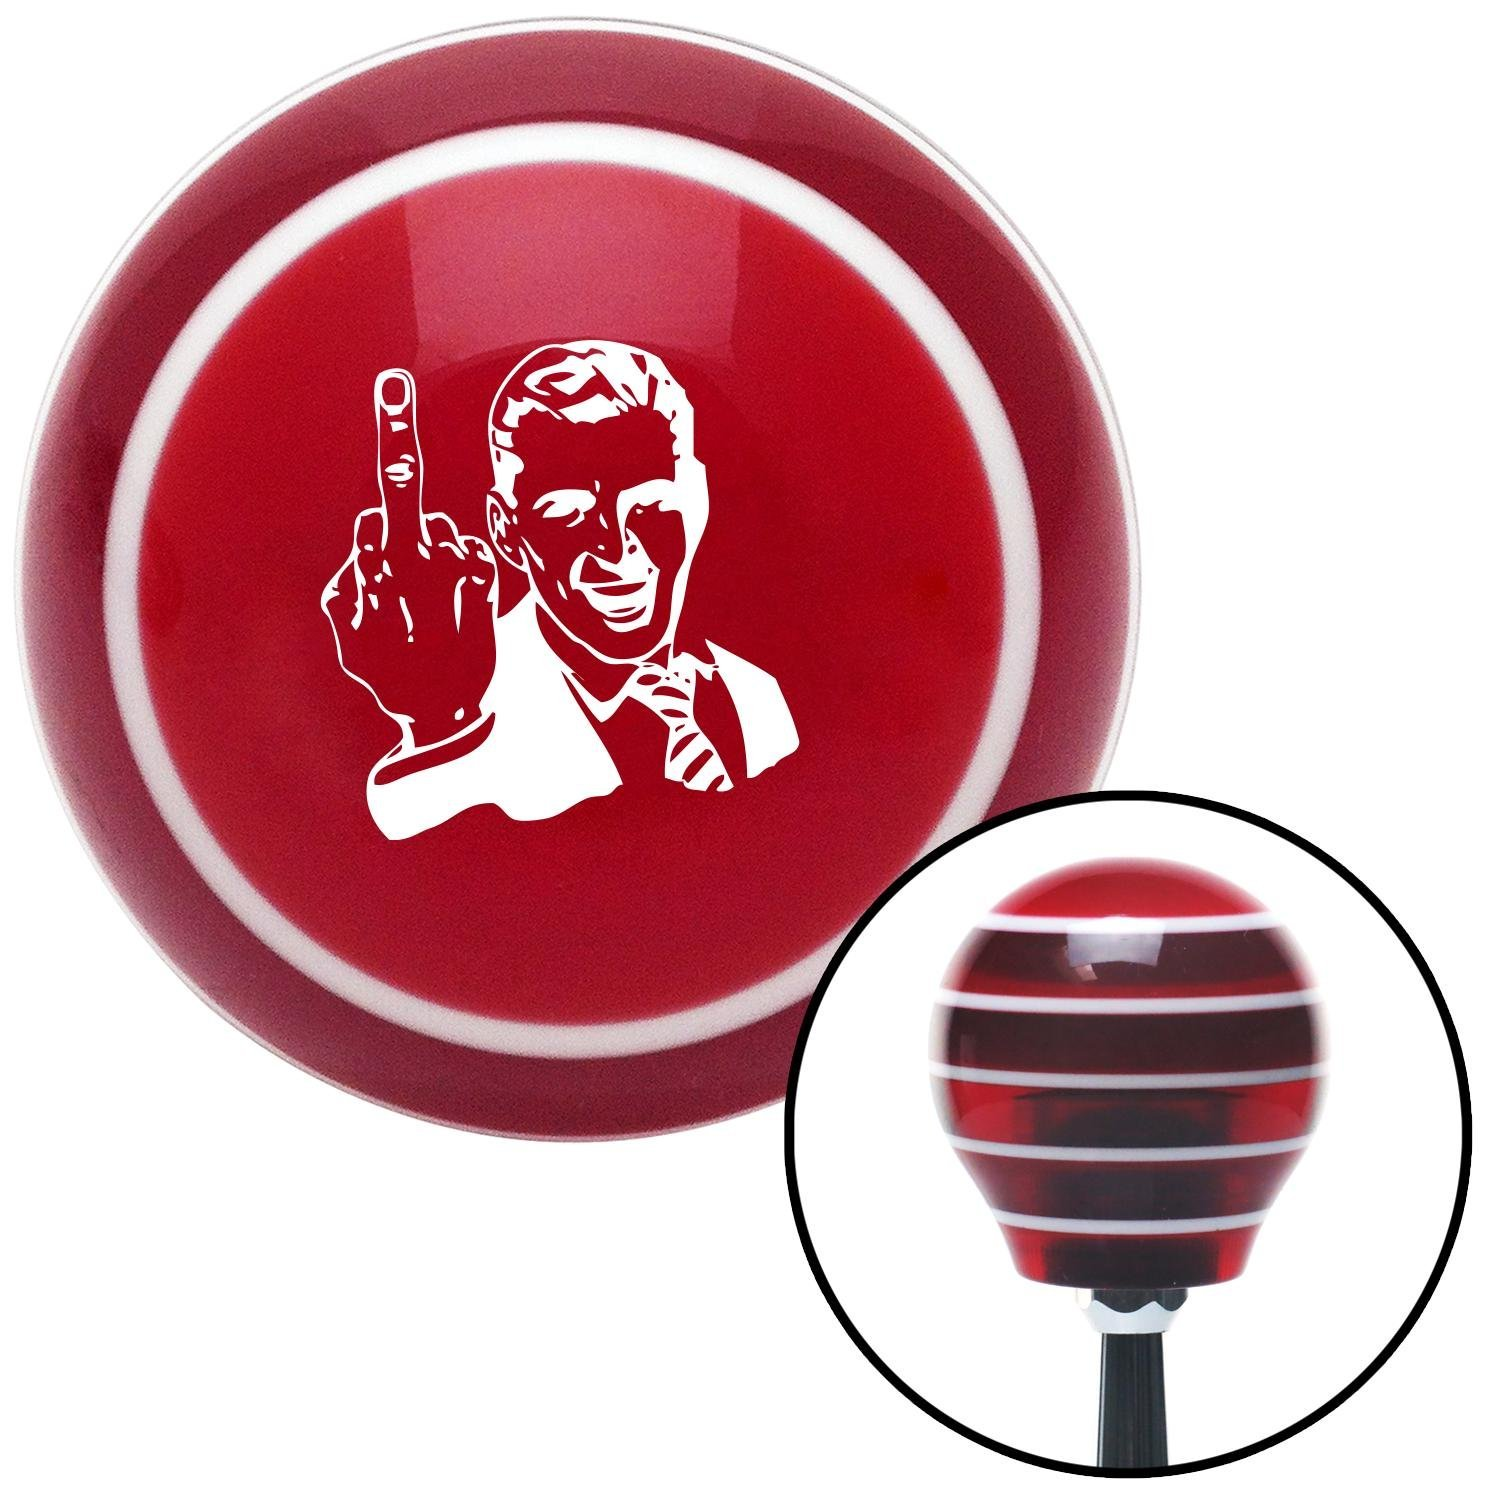 American Shifter 103477 Black Shift Knob with M16 x 1.5 Insert Red Serpent